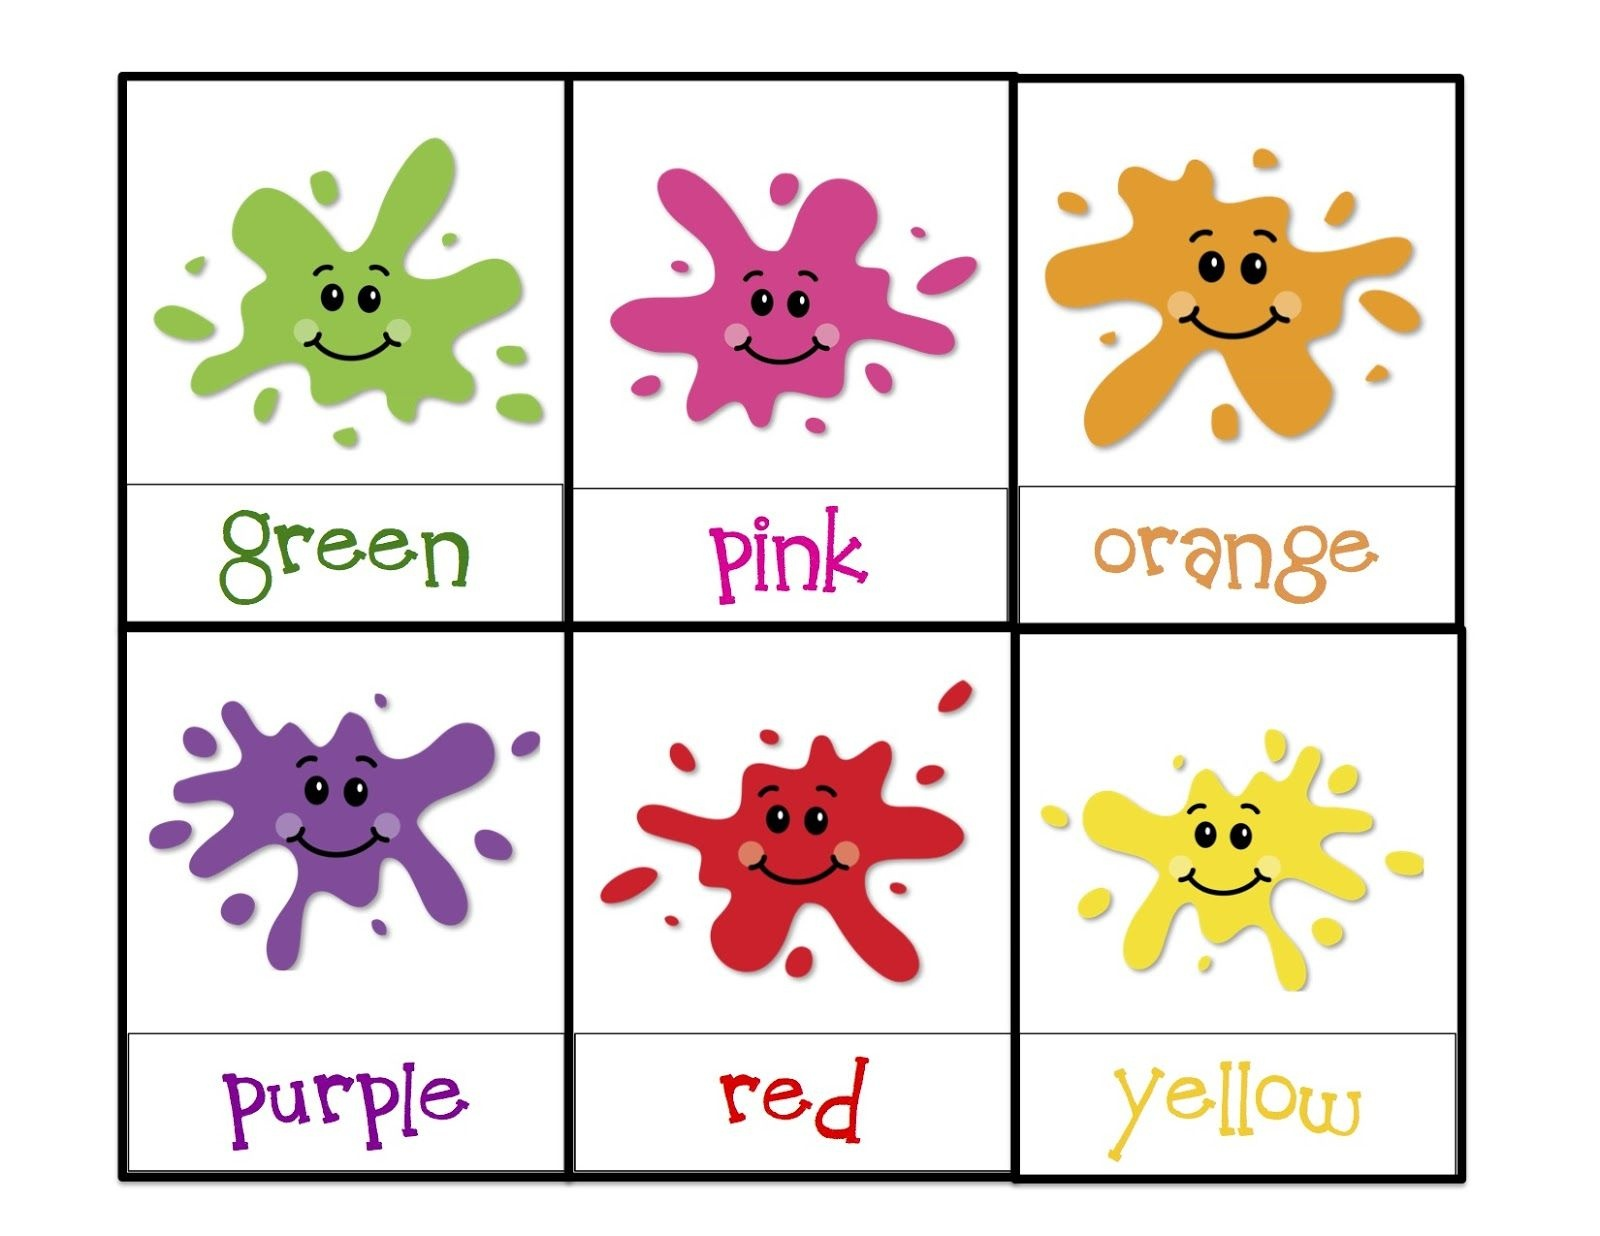 Learning Colors Printable   Children's Activities   Toddler Color - Color Recognition Worksheets Free Printable